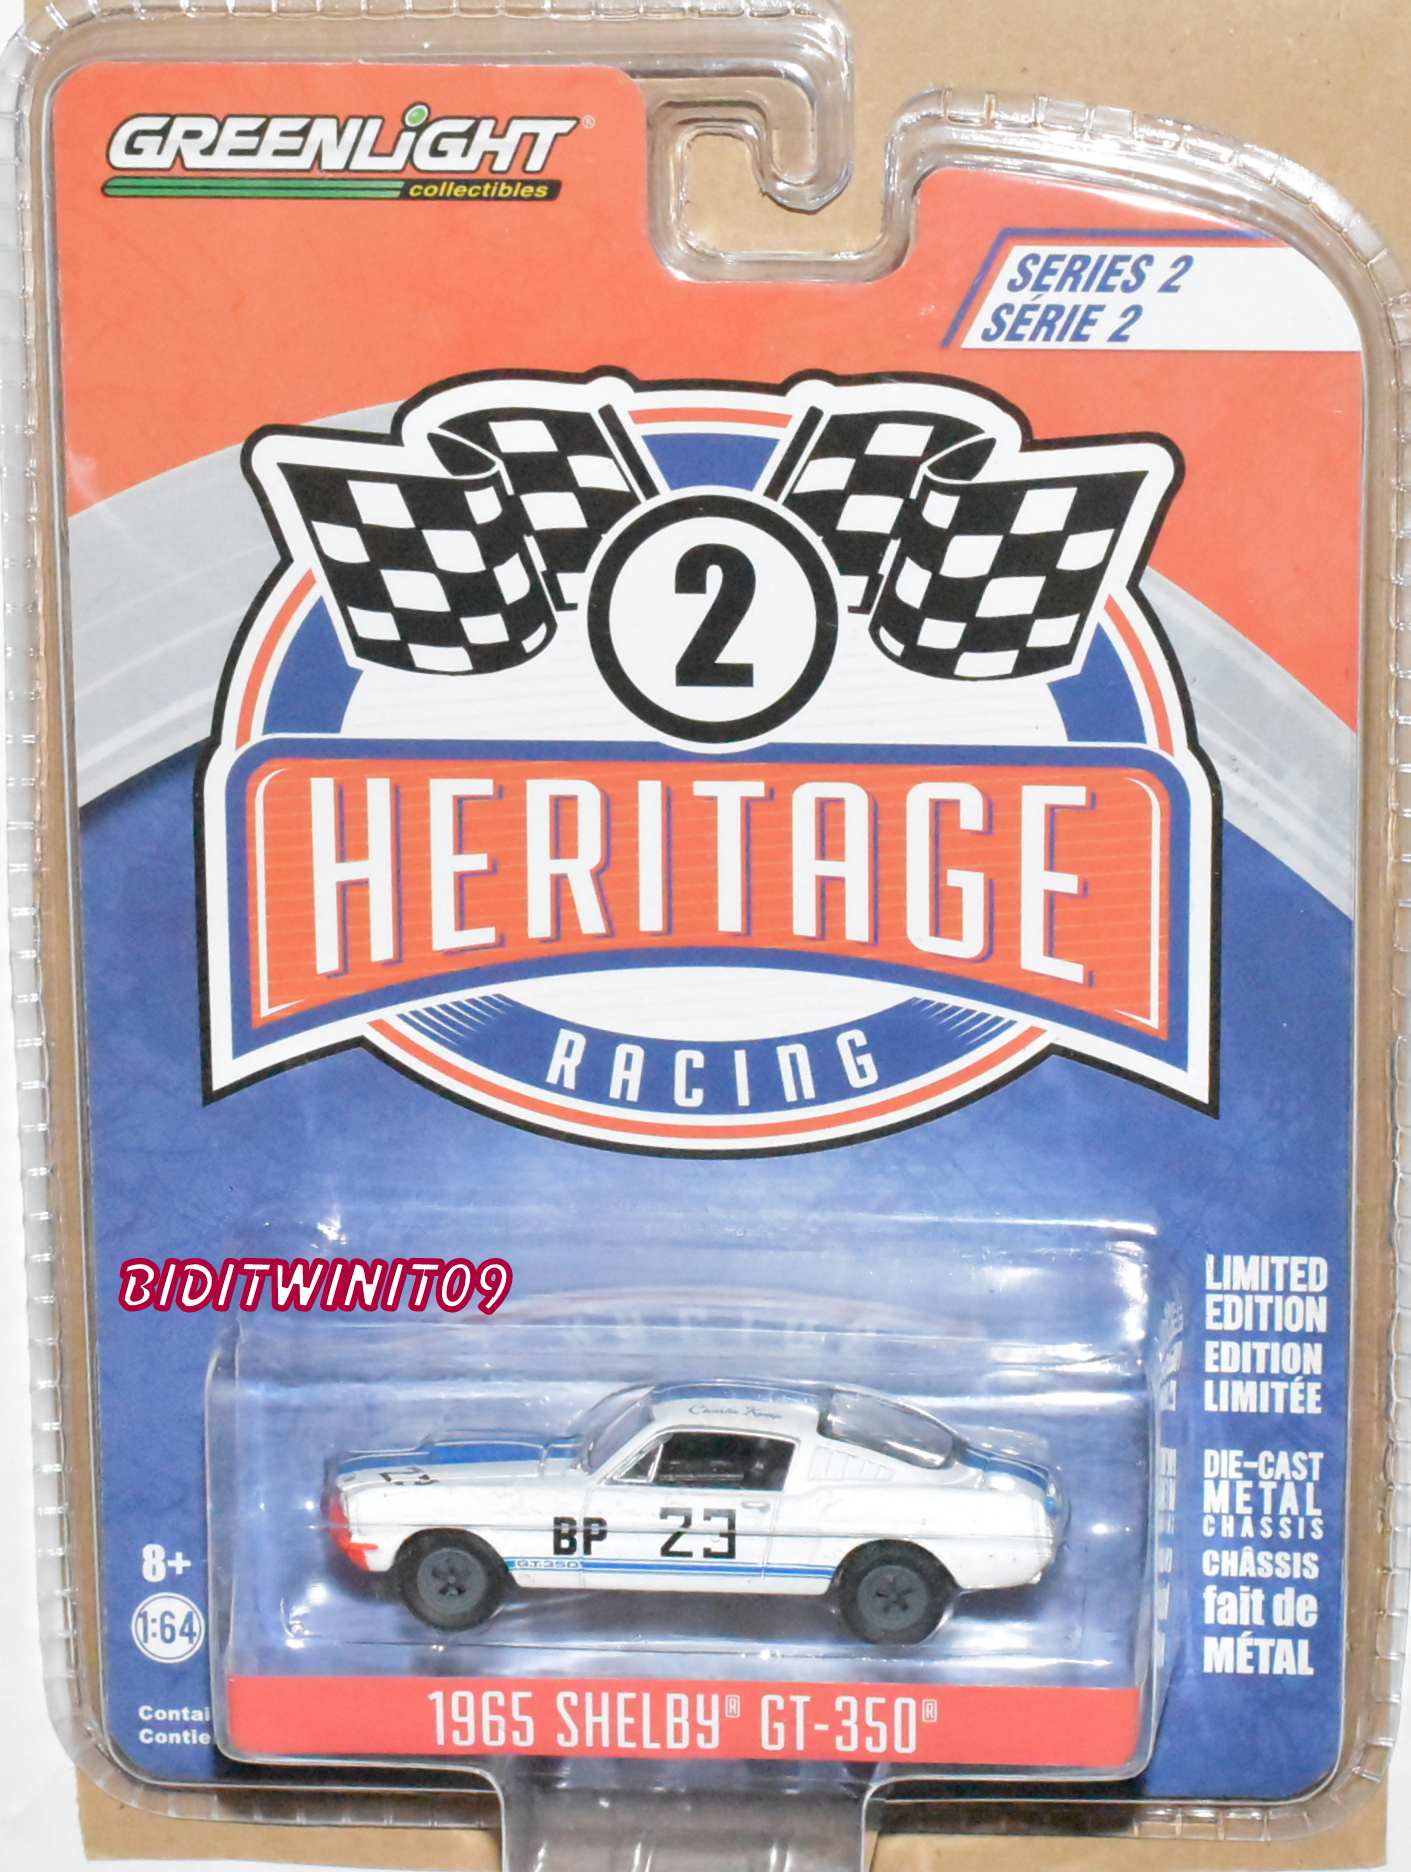 GREENLIGHT 2018 HERITAGE RACING 1965 FORD SHELBY GT-350 SERIES 2